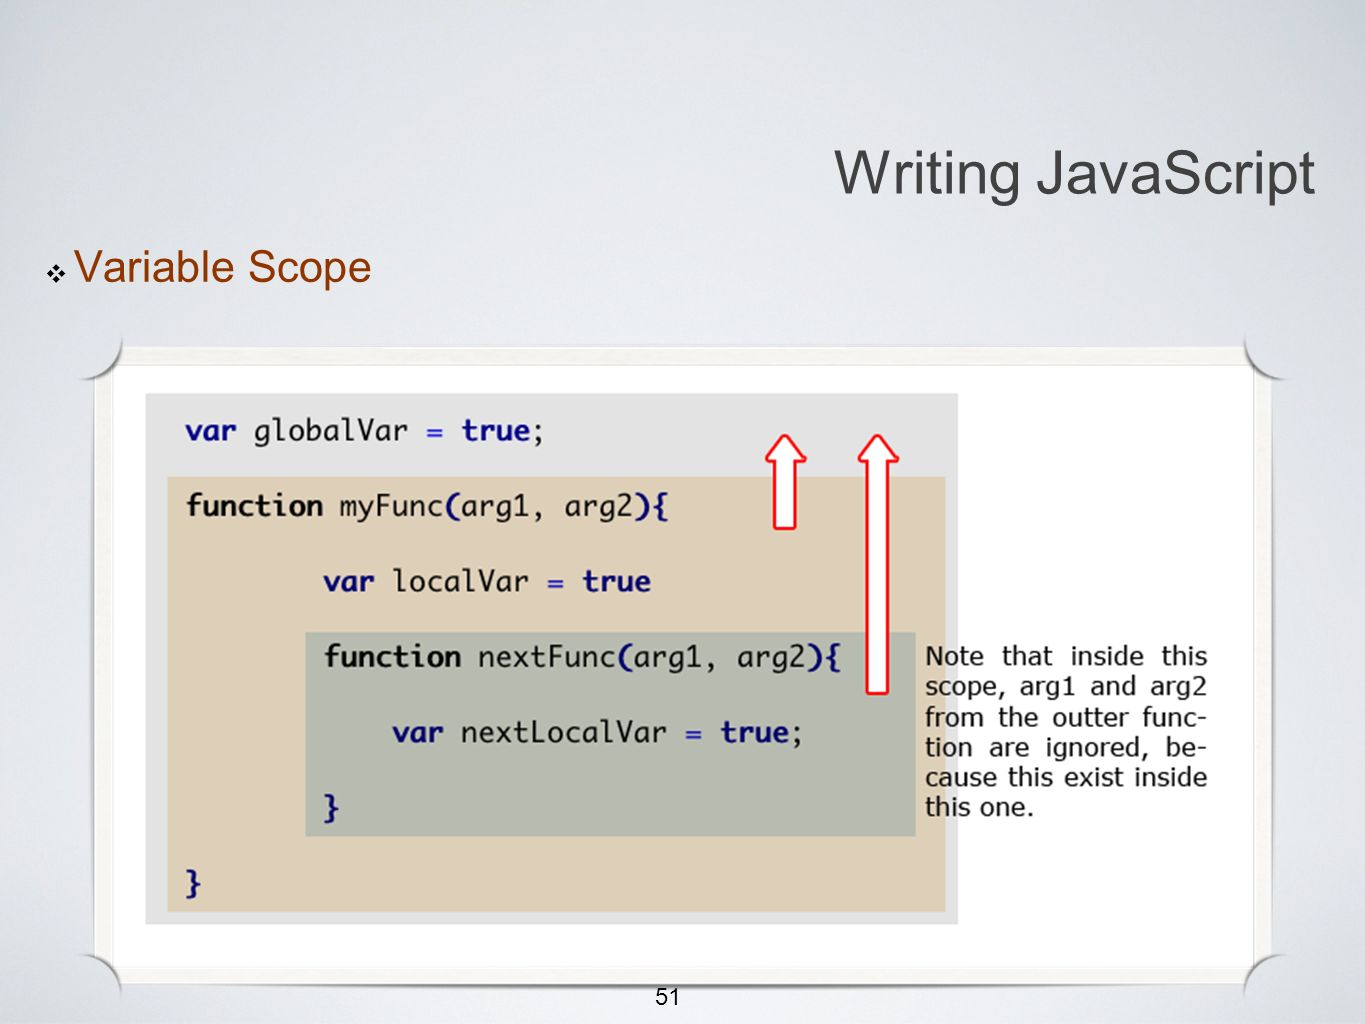 51 Variable Scope Michael Smotherman lectures 1:15pm FS2-207F Brandon Bombassei, Alejandro Campos labs 5pm-9pm 9pm-1am FS2-106E Writing JavaScript